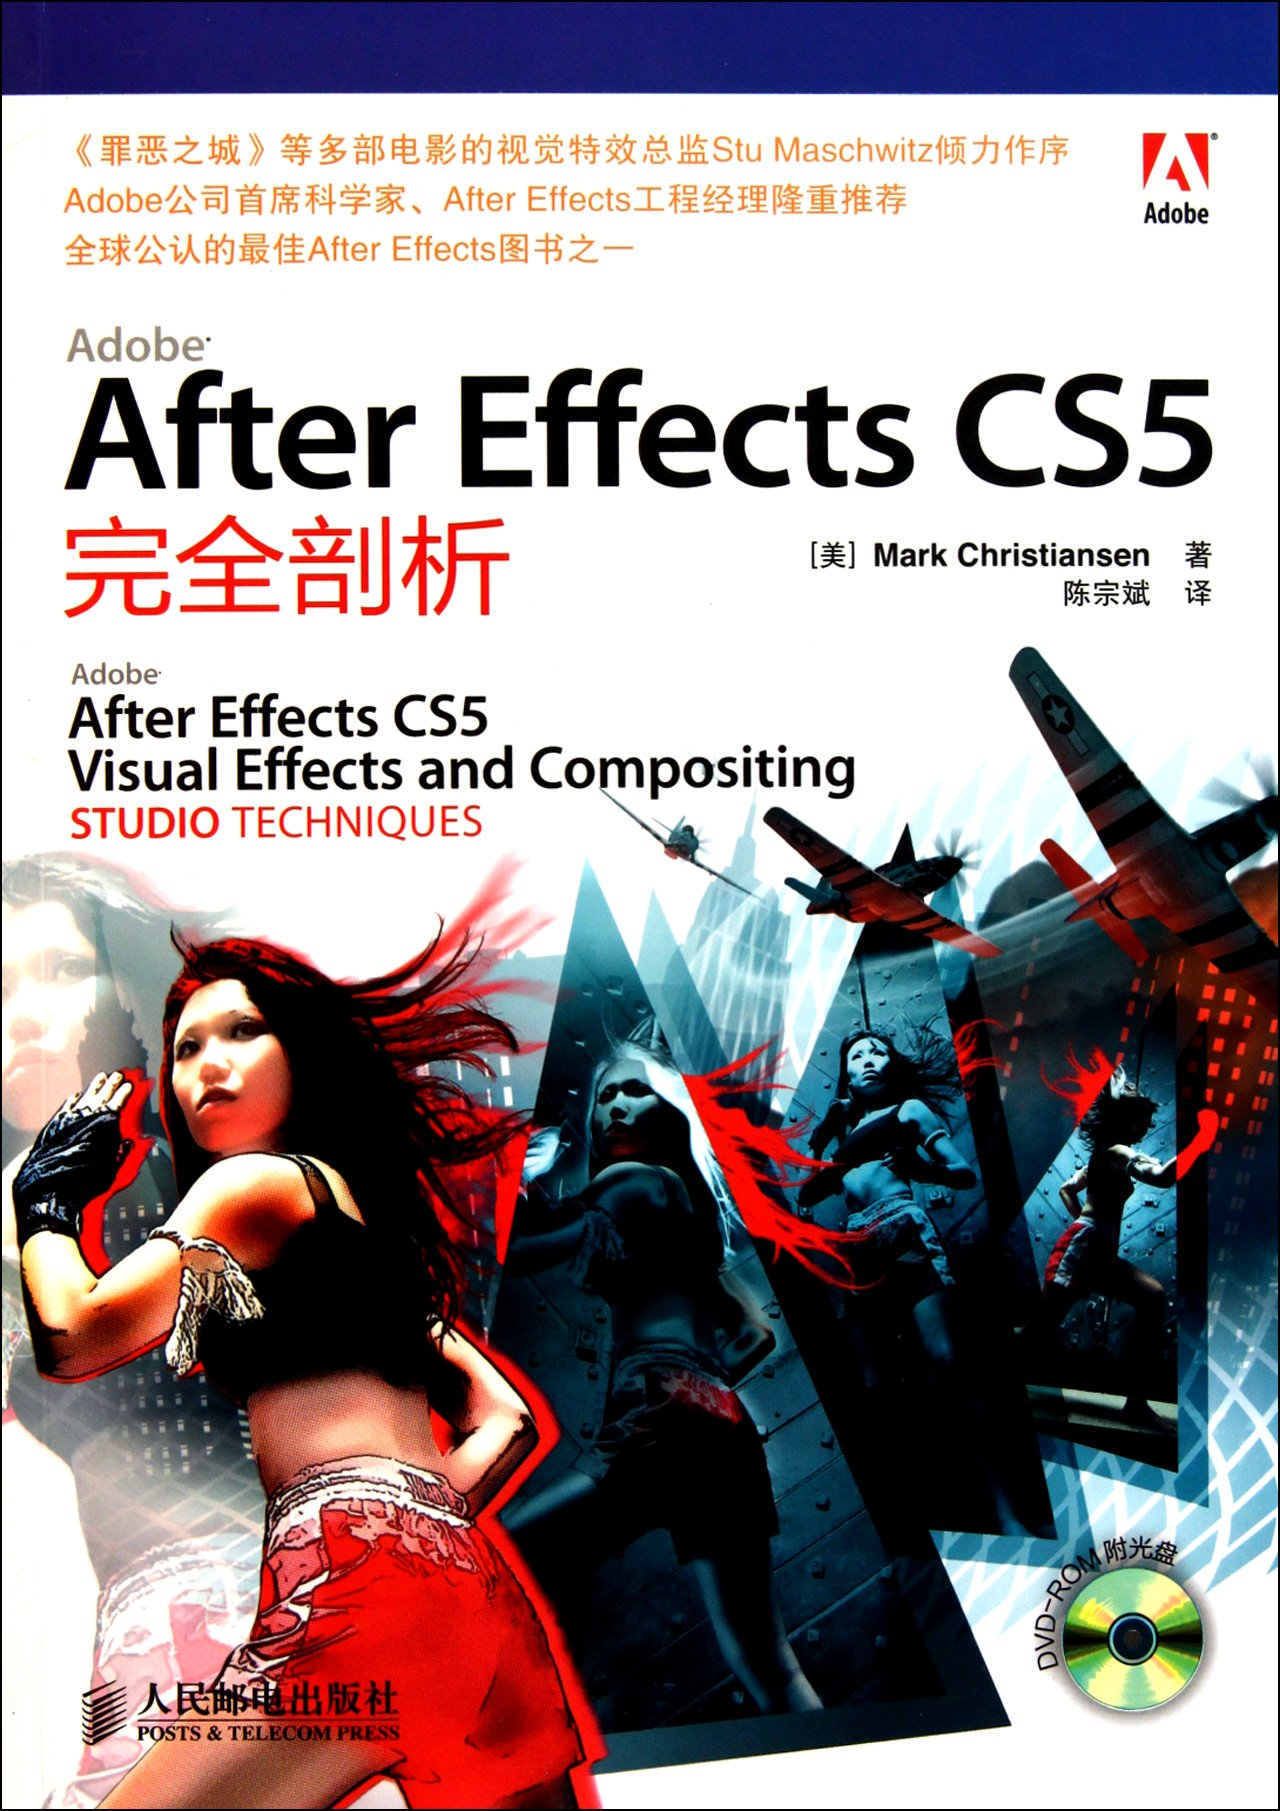 Adobe After Effects CS5 Visual Effects and Compositing Studio Techniques  (1DVD Enclosed) (Chinese Edition): [Mei]MarkChristiansen: 9787115250773: ...